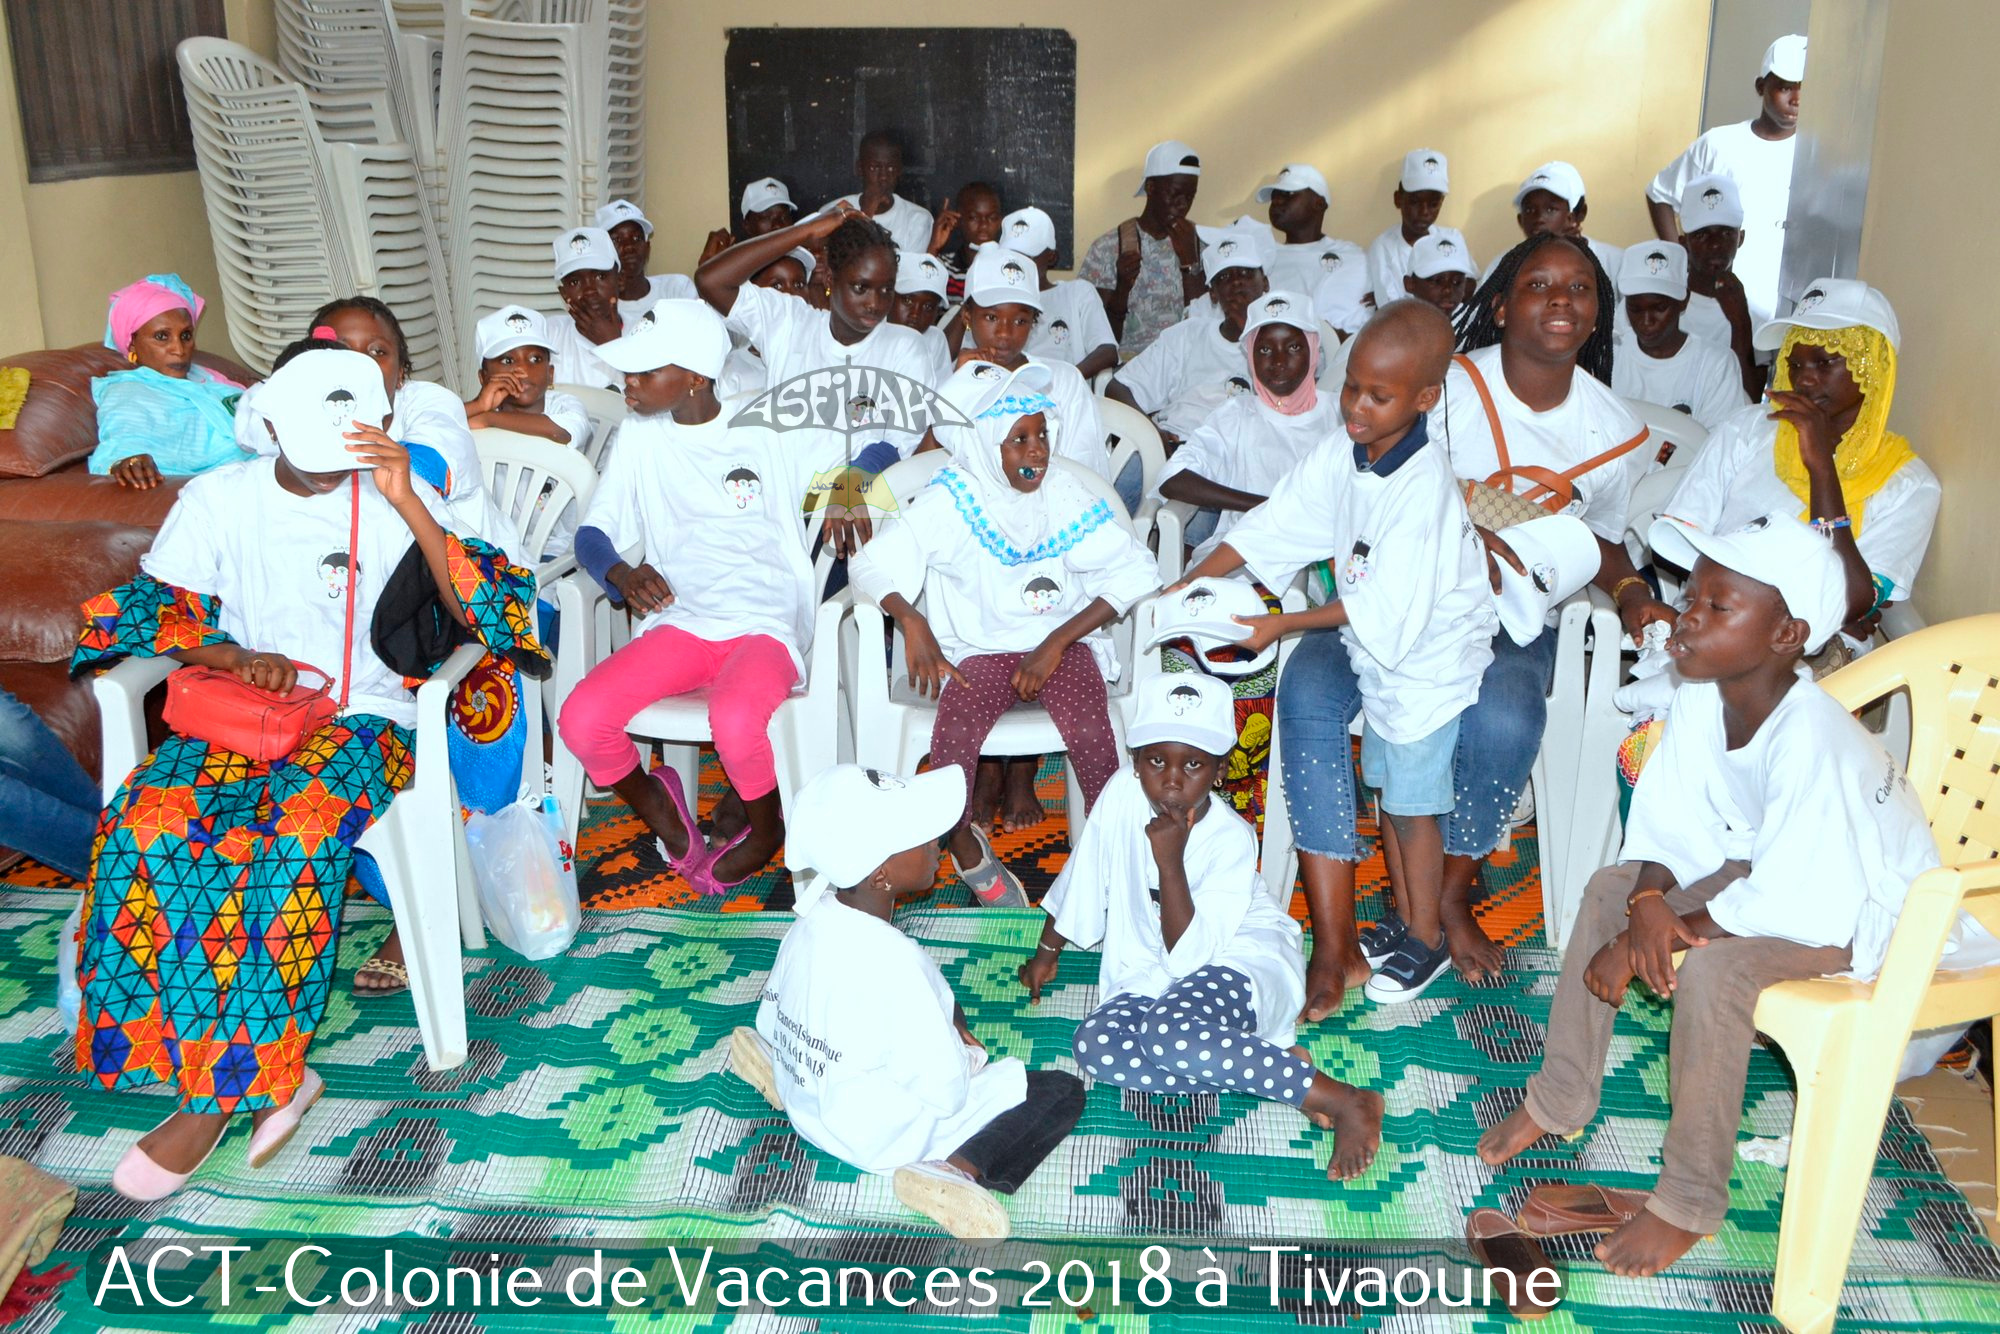 PHOTOS - TIVAOUANE 2018 -  Les Images de la Colonie de Vacances 2018 à Tivaouane de l'association Action Tidiane